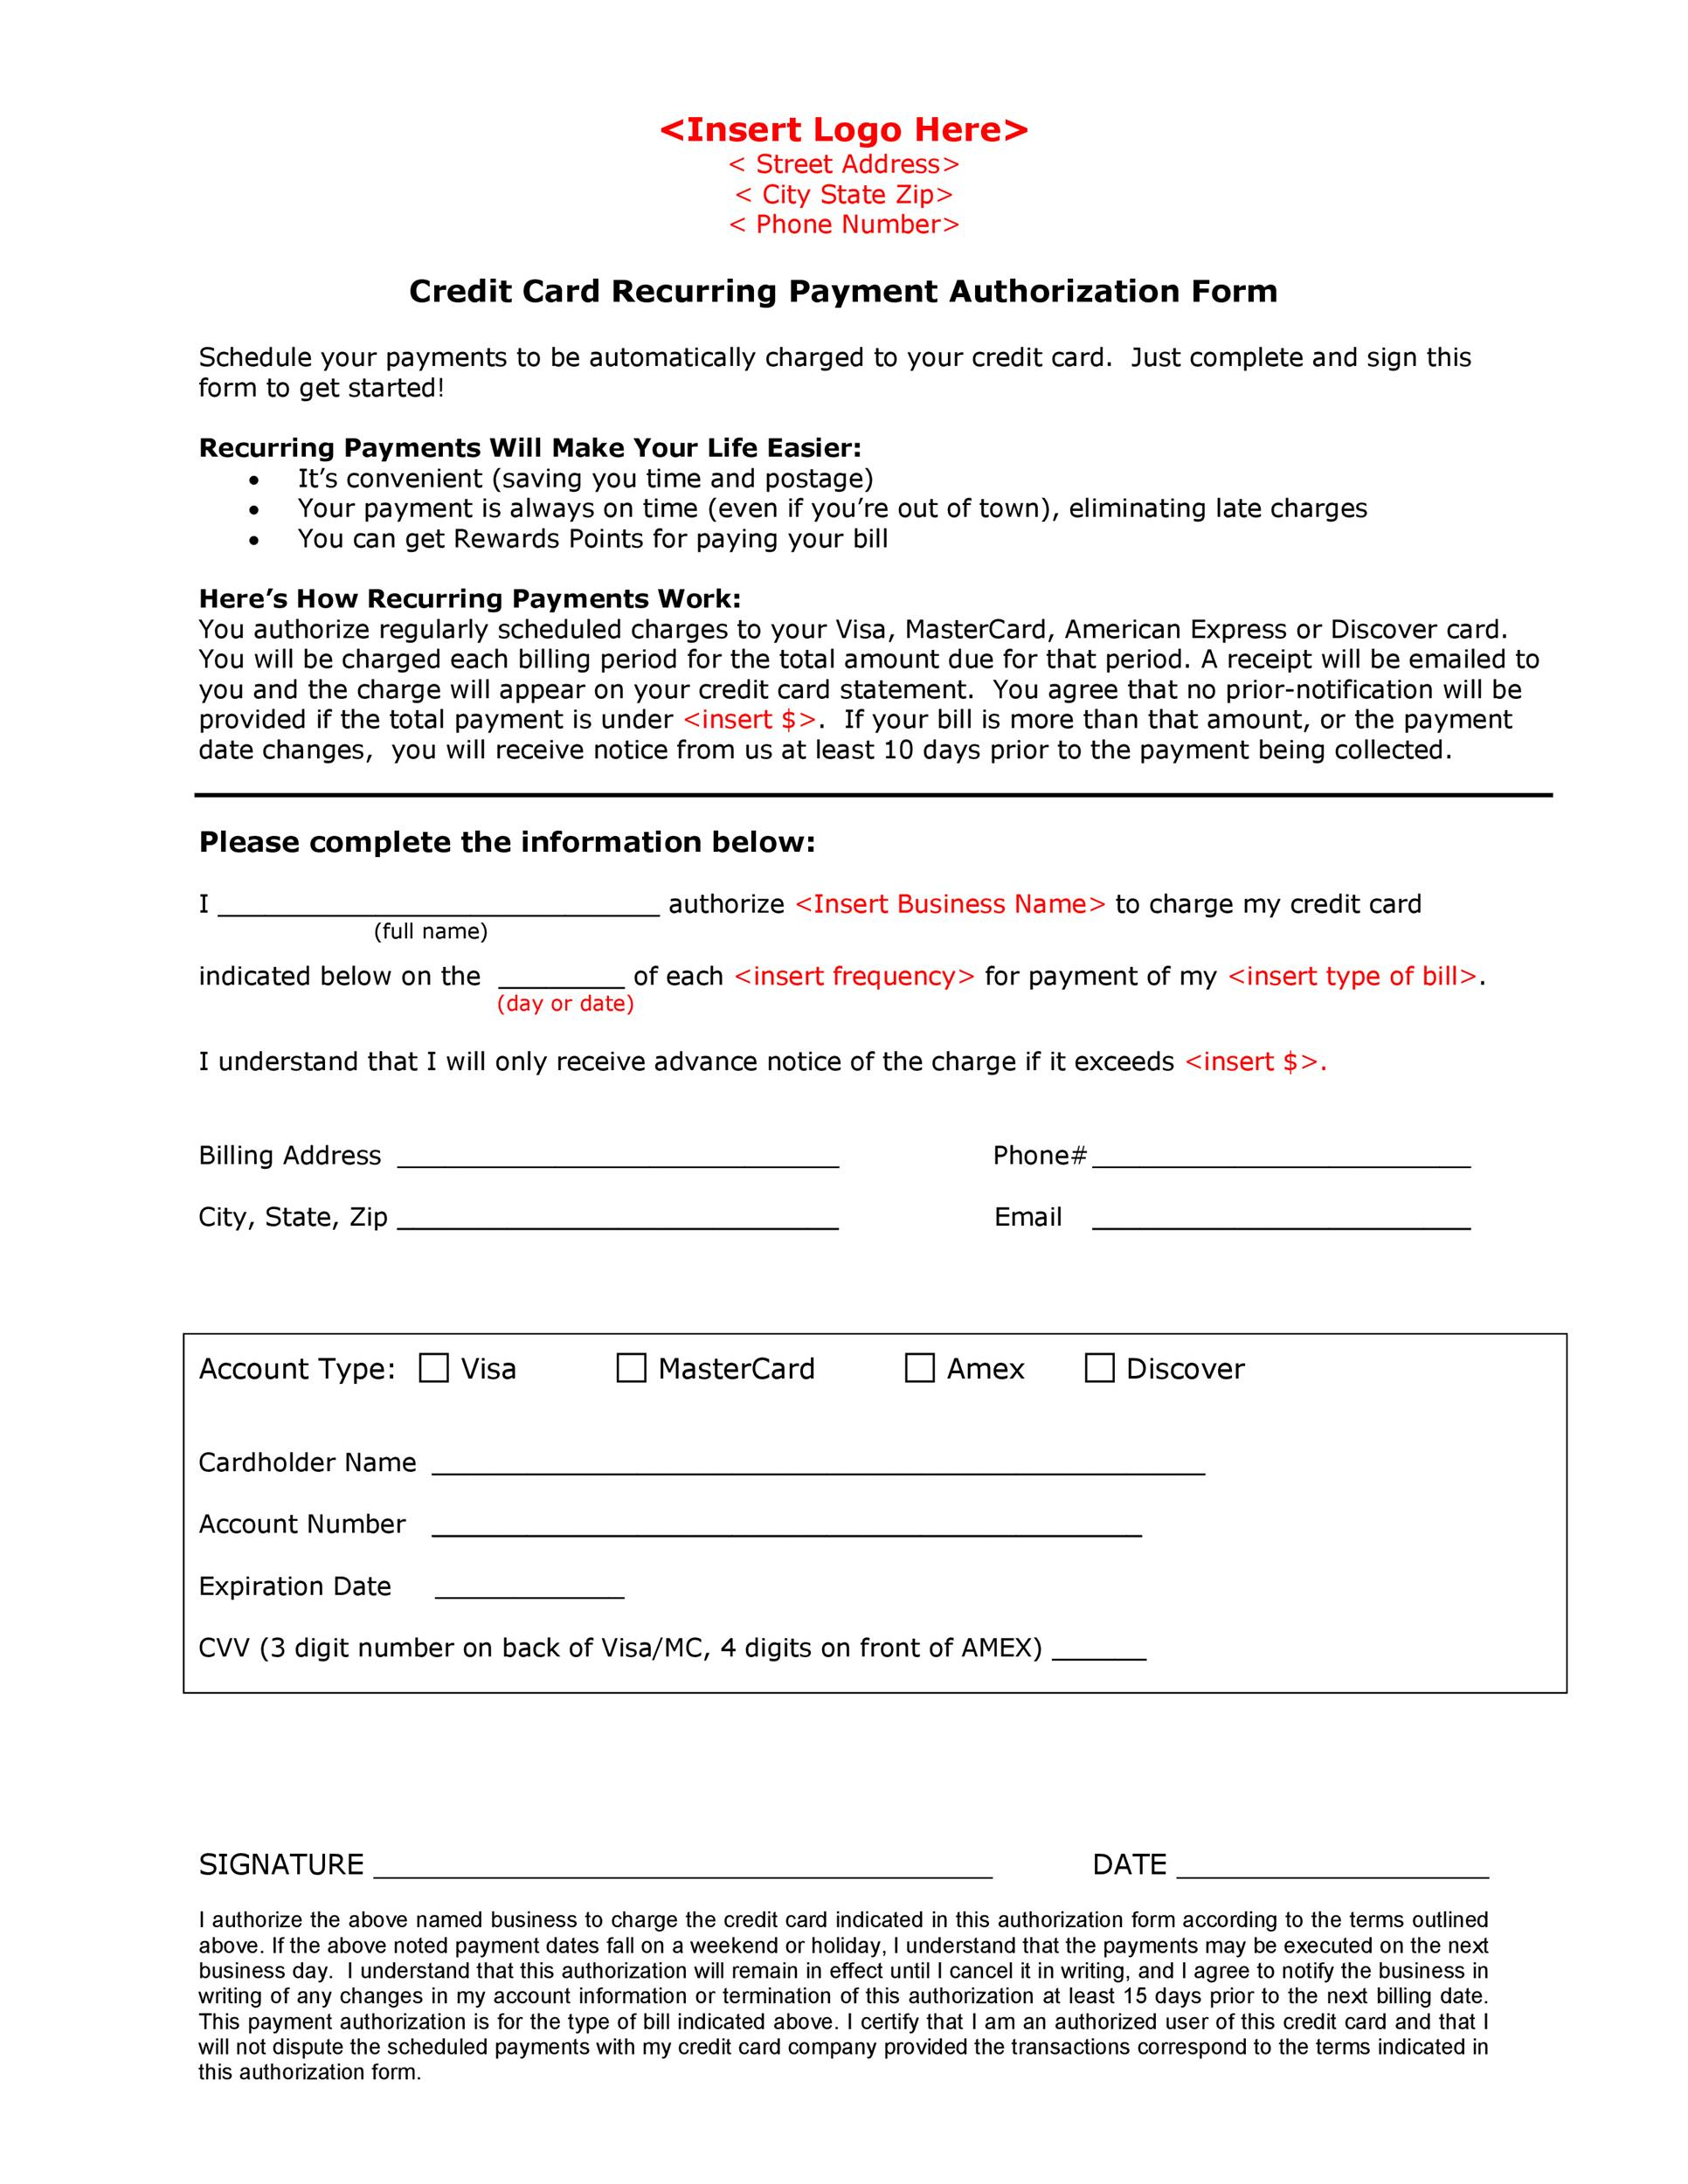 Card Form Template | 41 Credit Card Authorization Forms Templates